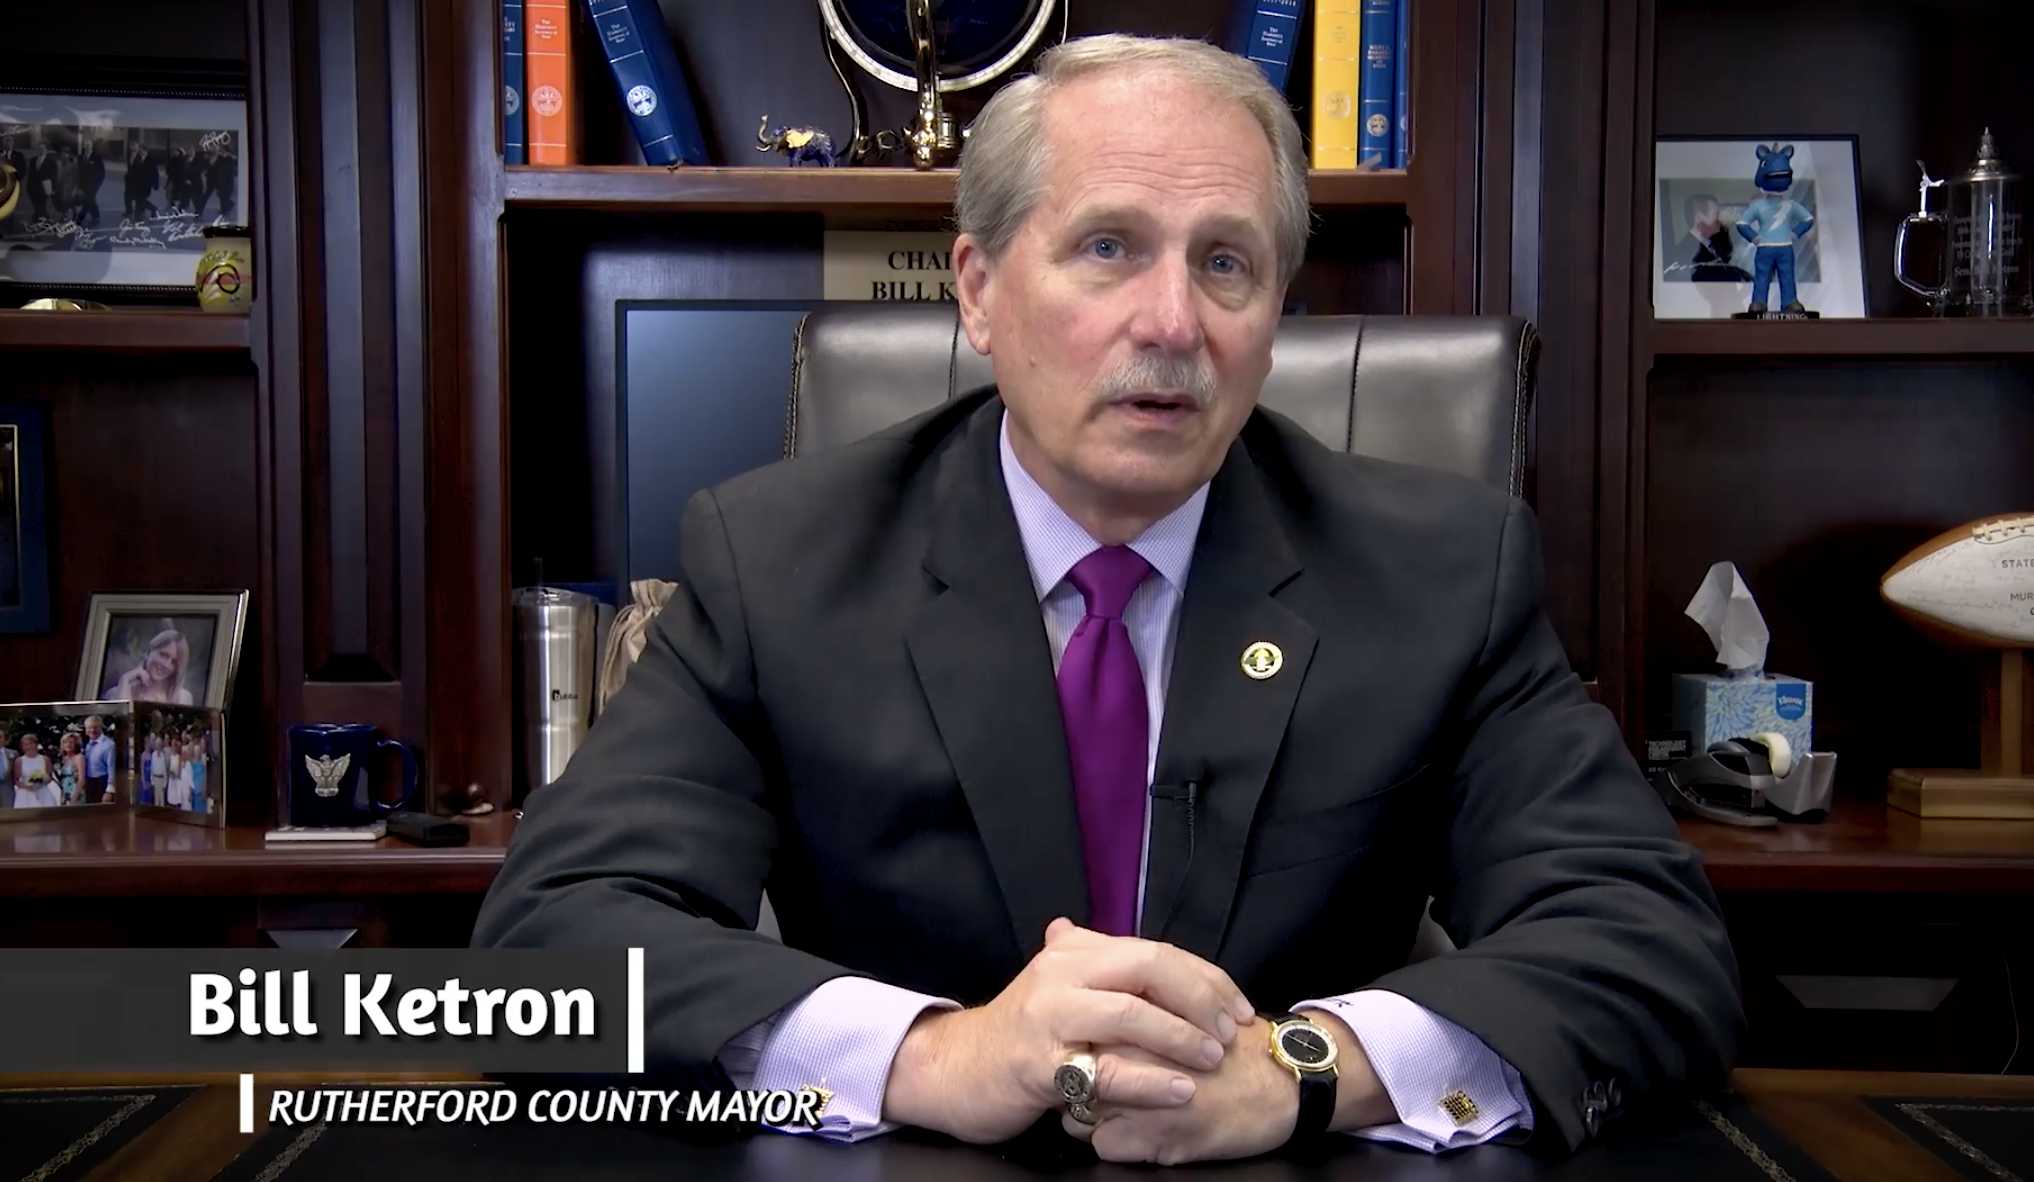 Election board levies $135,000 penalty on Rutherford County Mayor Ketron